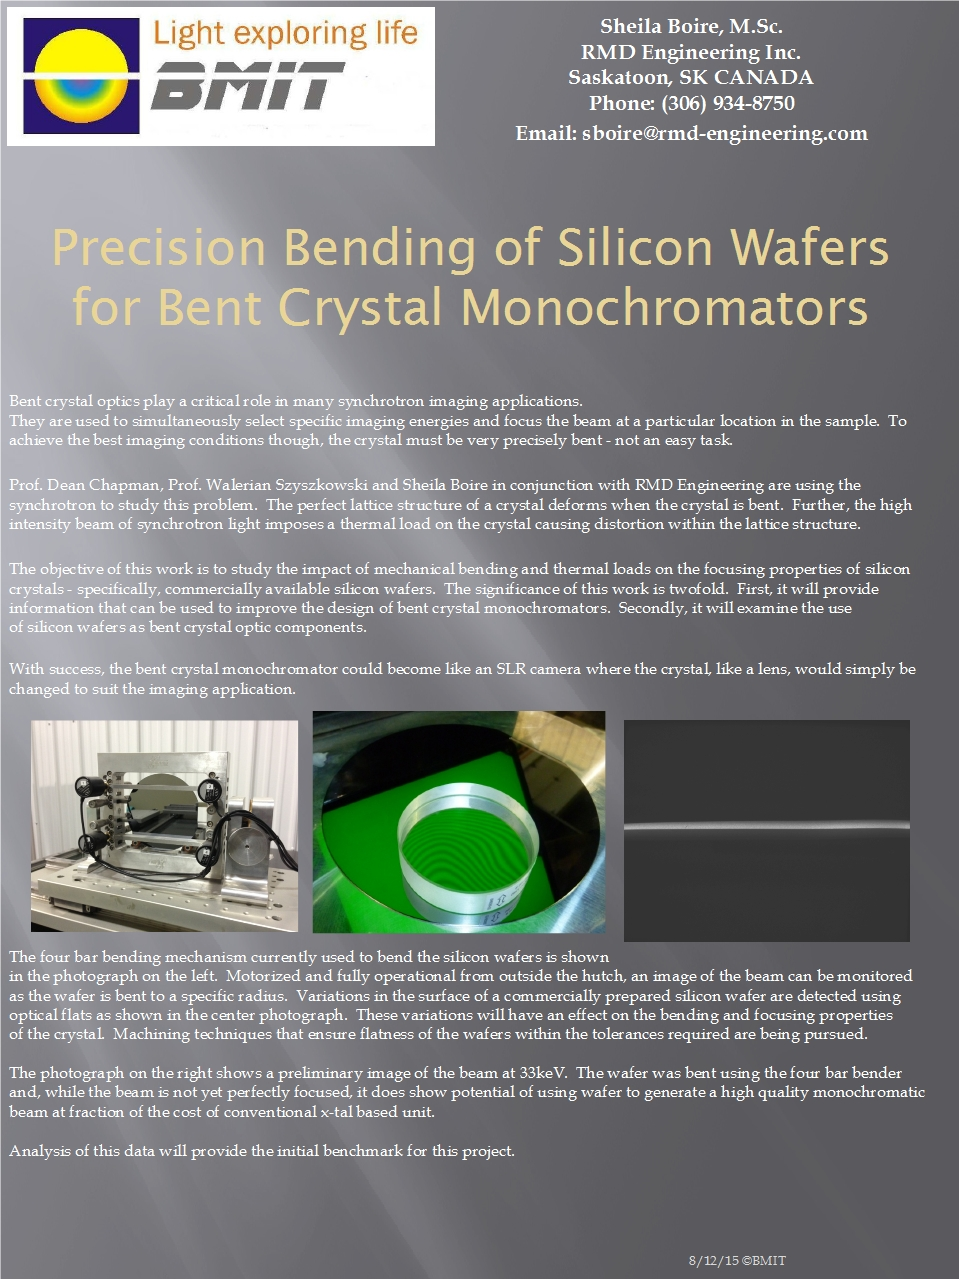 Precision Bending of Silicon Wafers for Bent Crystal Monochromators Image